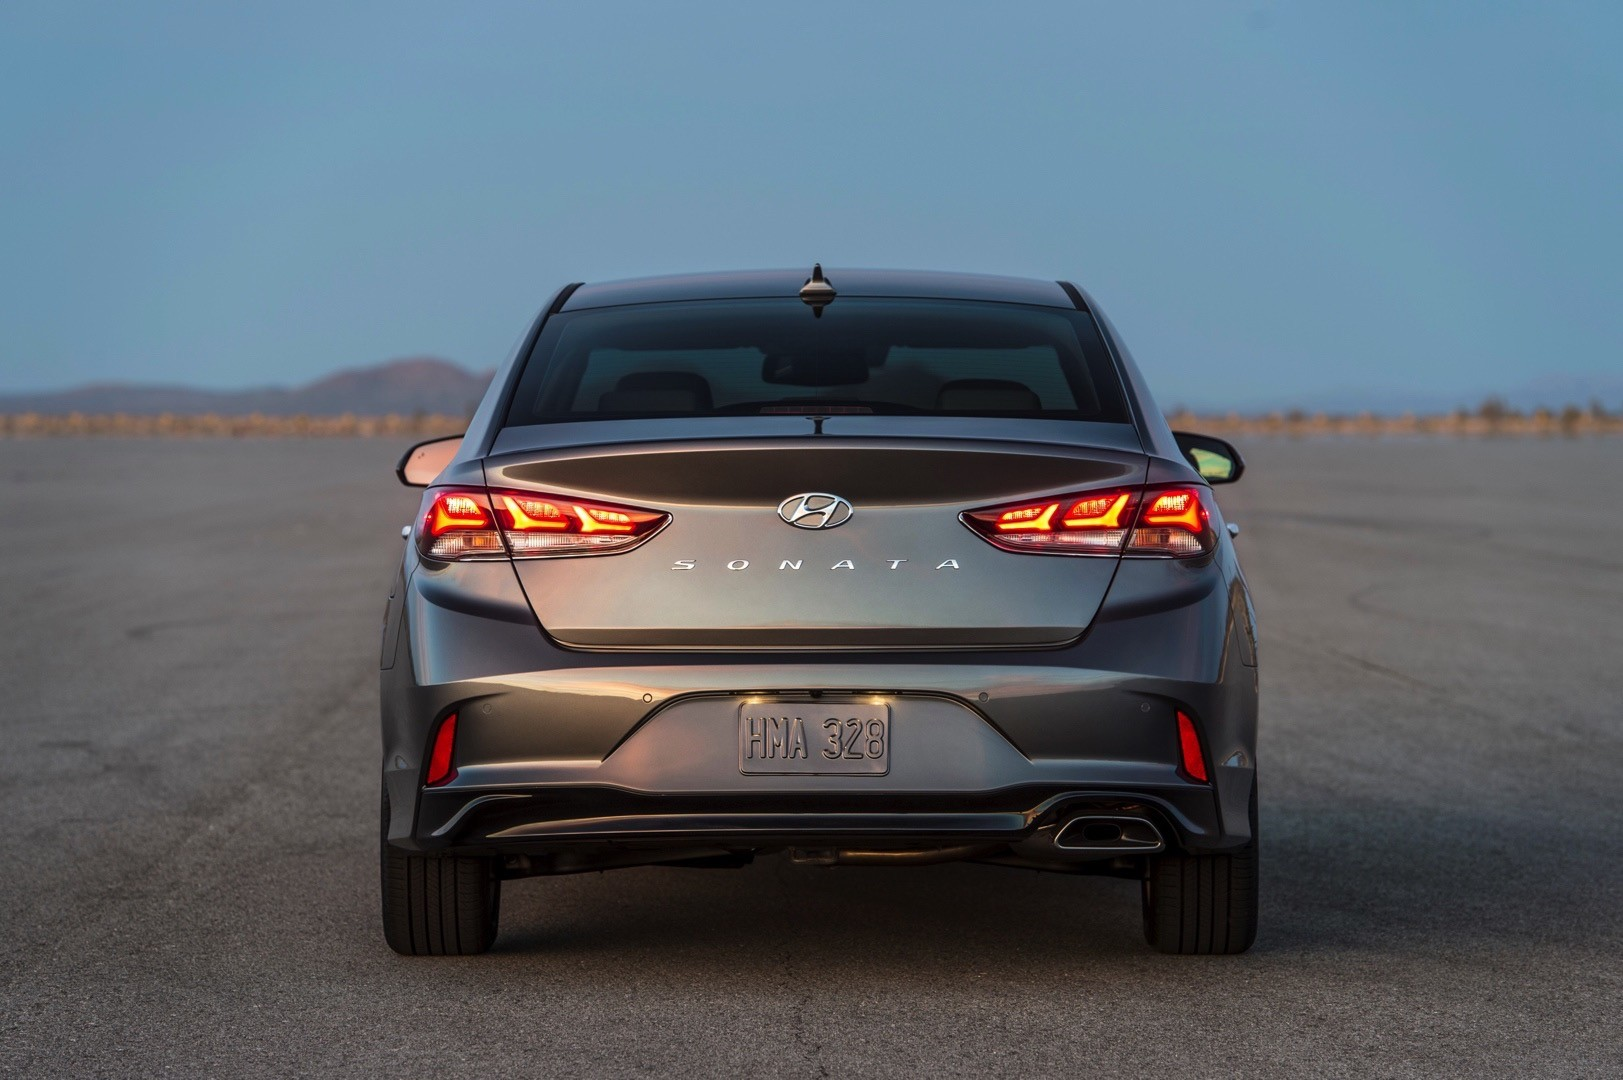 2018 Hyundai Sonata Debuts With Refreshed Styling, New